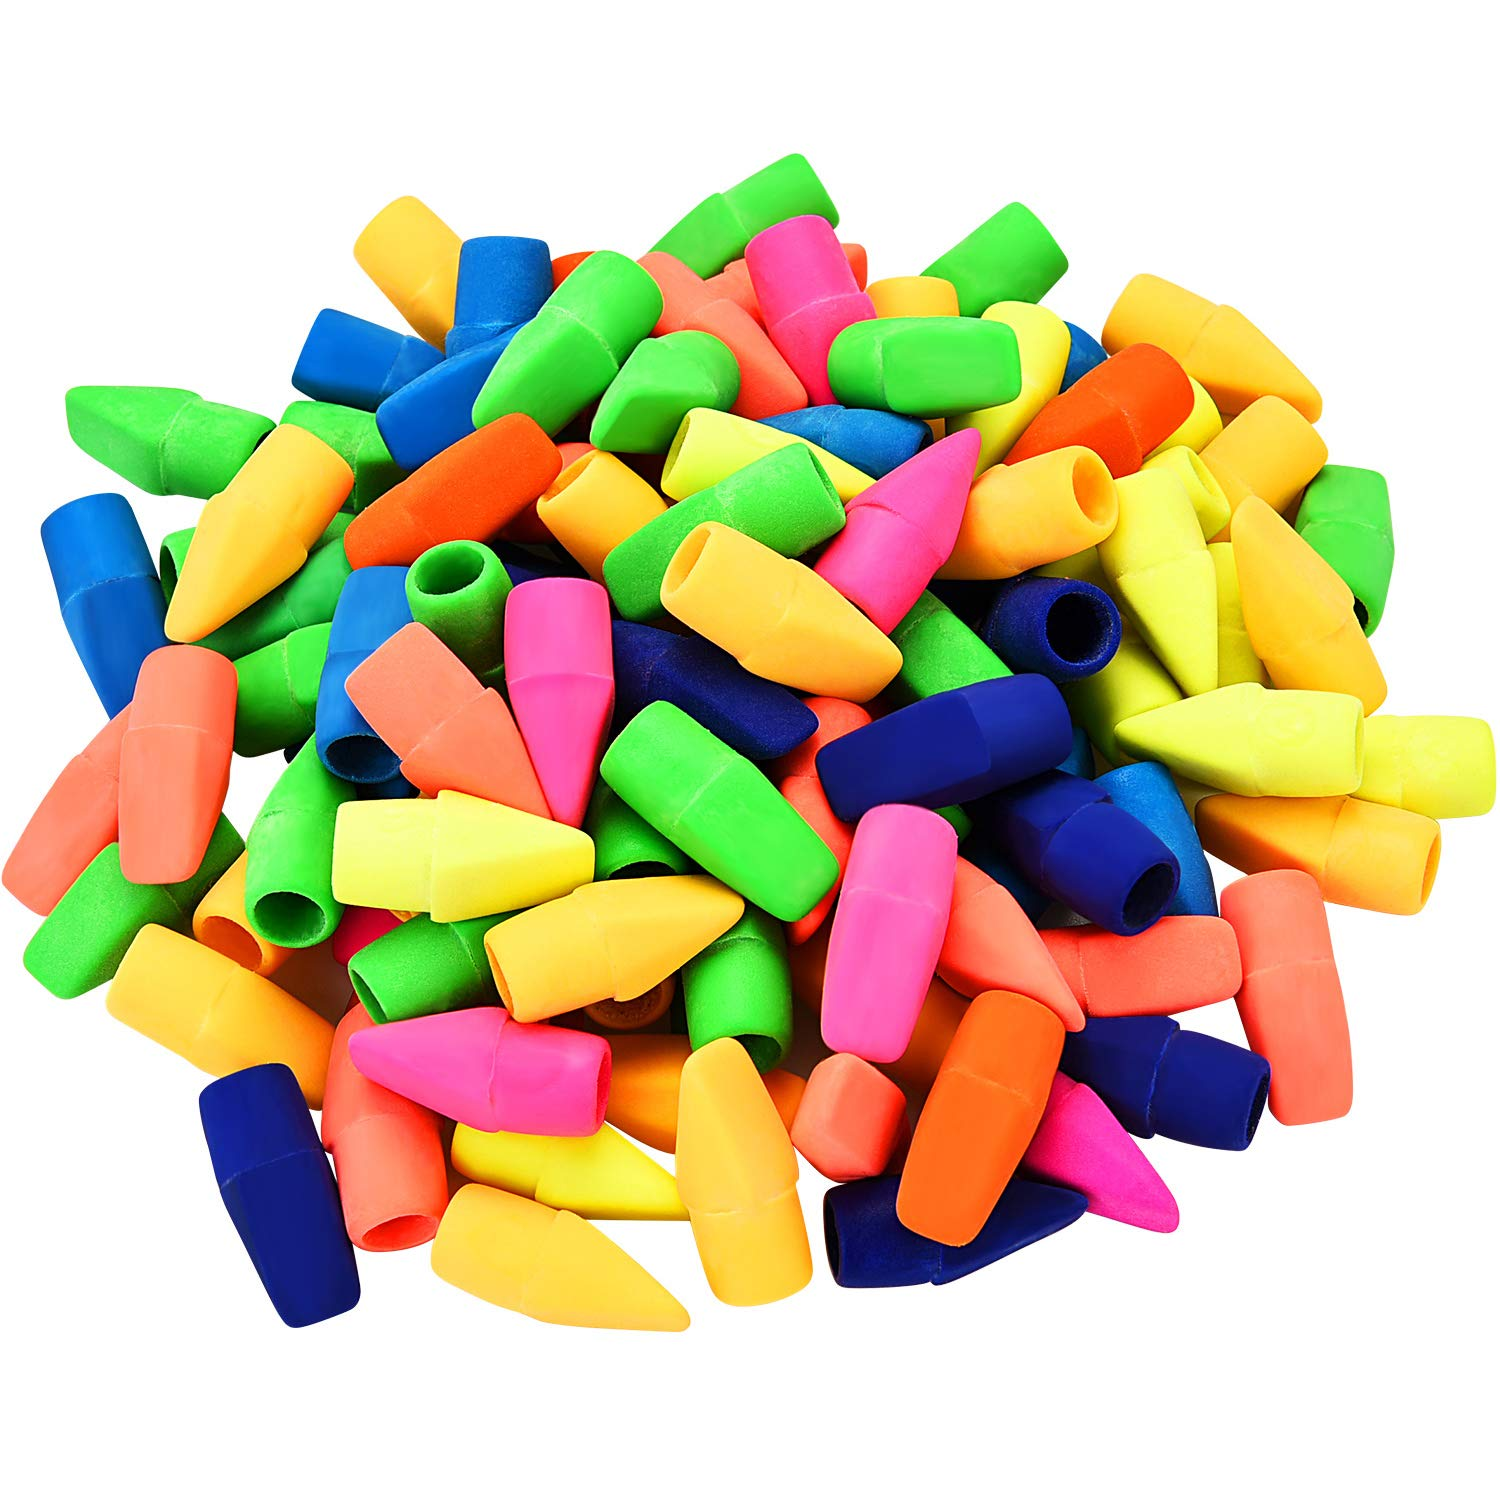 TecUnite 200 Pieces Pencil Eraser Caps Pencils Top Erasers for Kids Students Learning, Assorted Colors by TecUnite (Image #1)